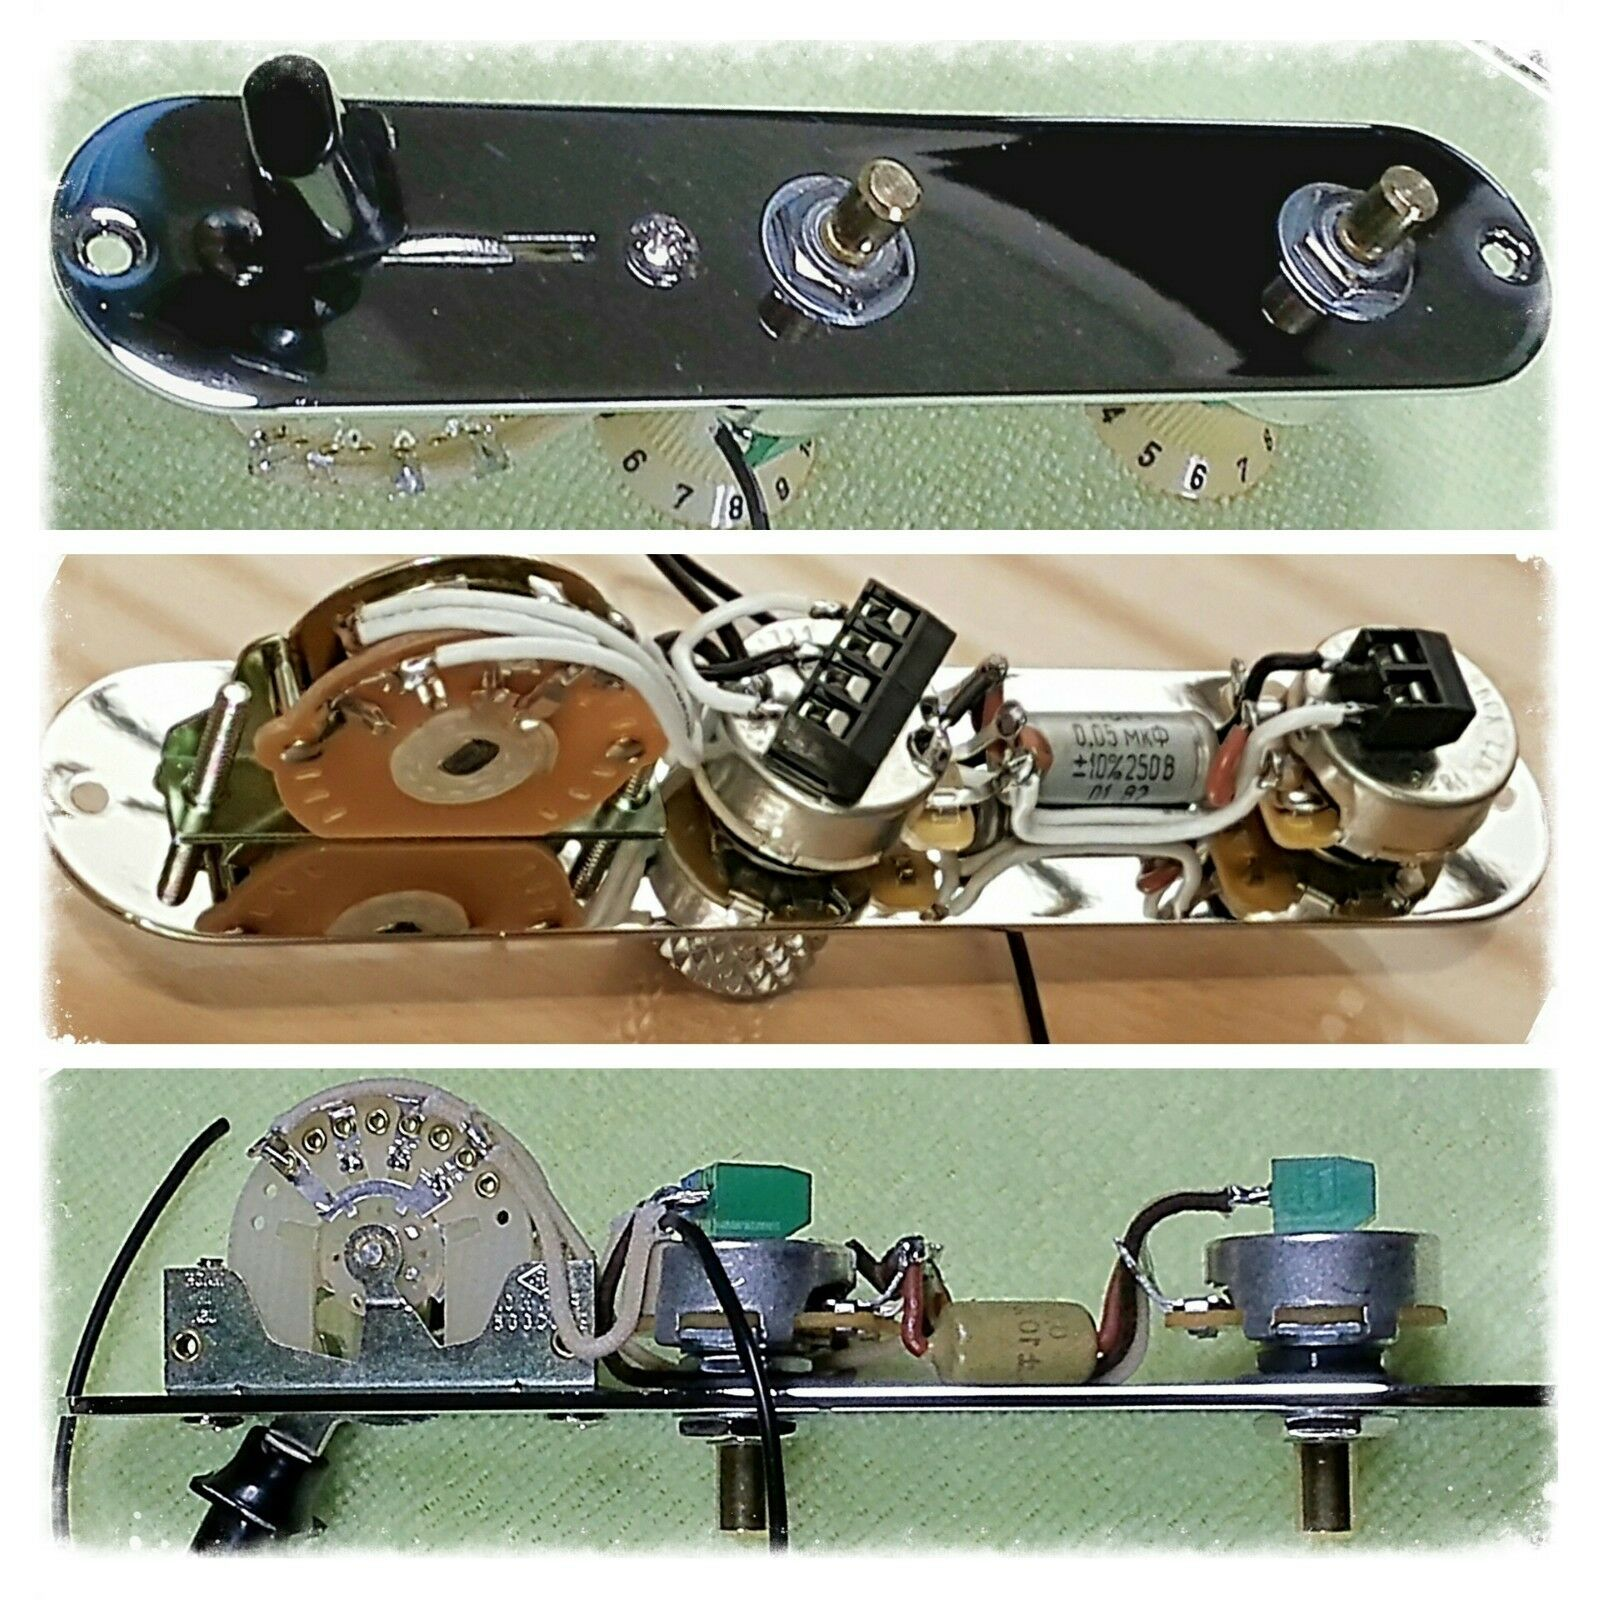 Fender Telecaster Tele 3 way control plate wiring loom harness upgrade kit